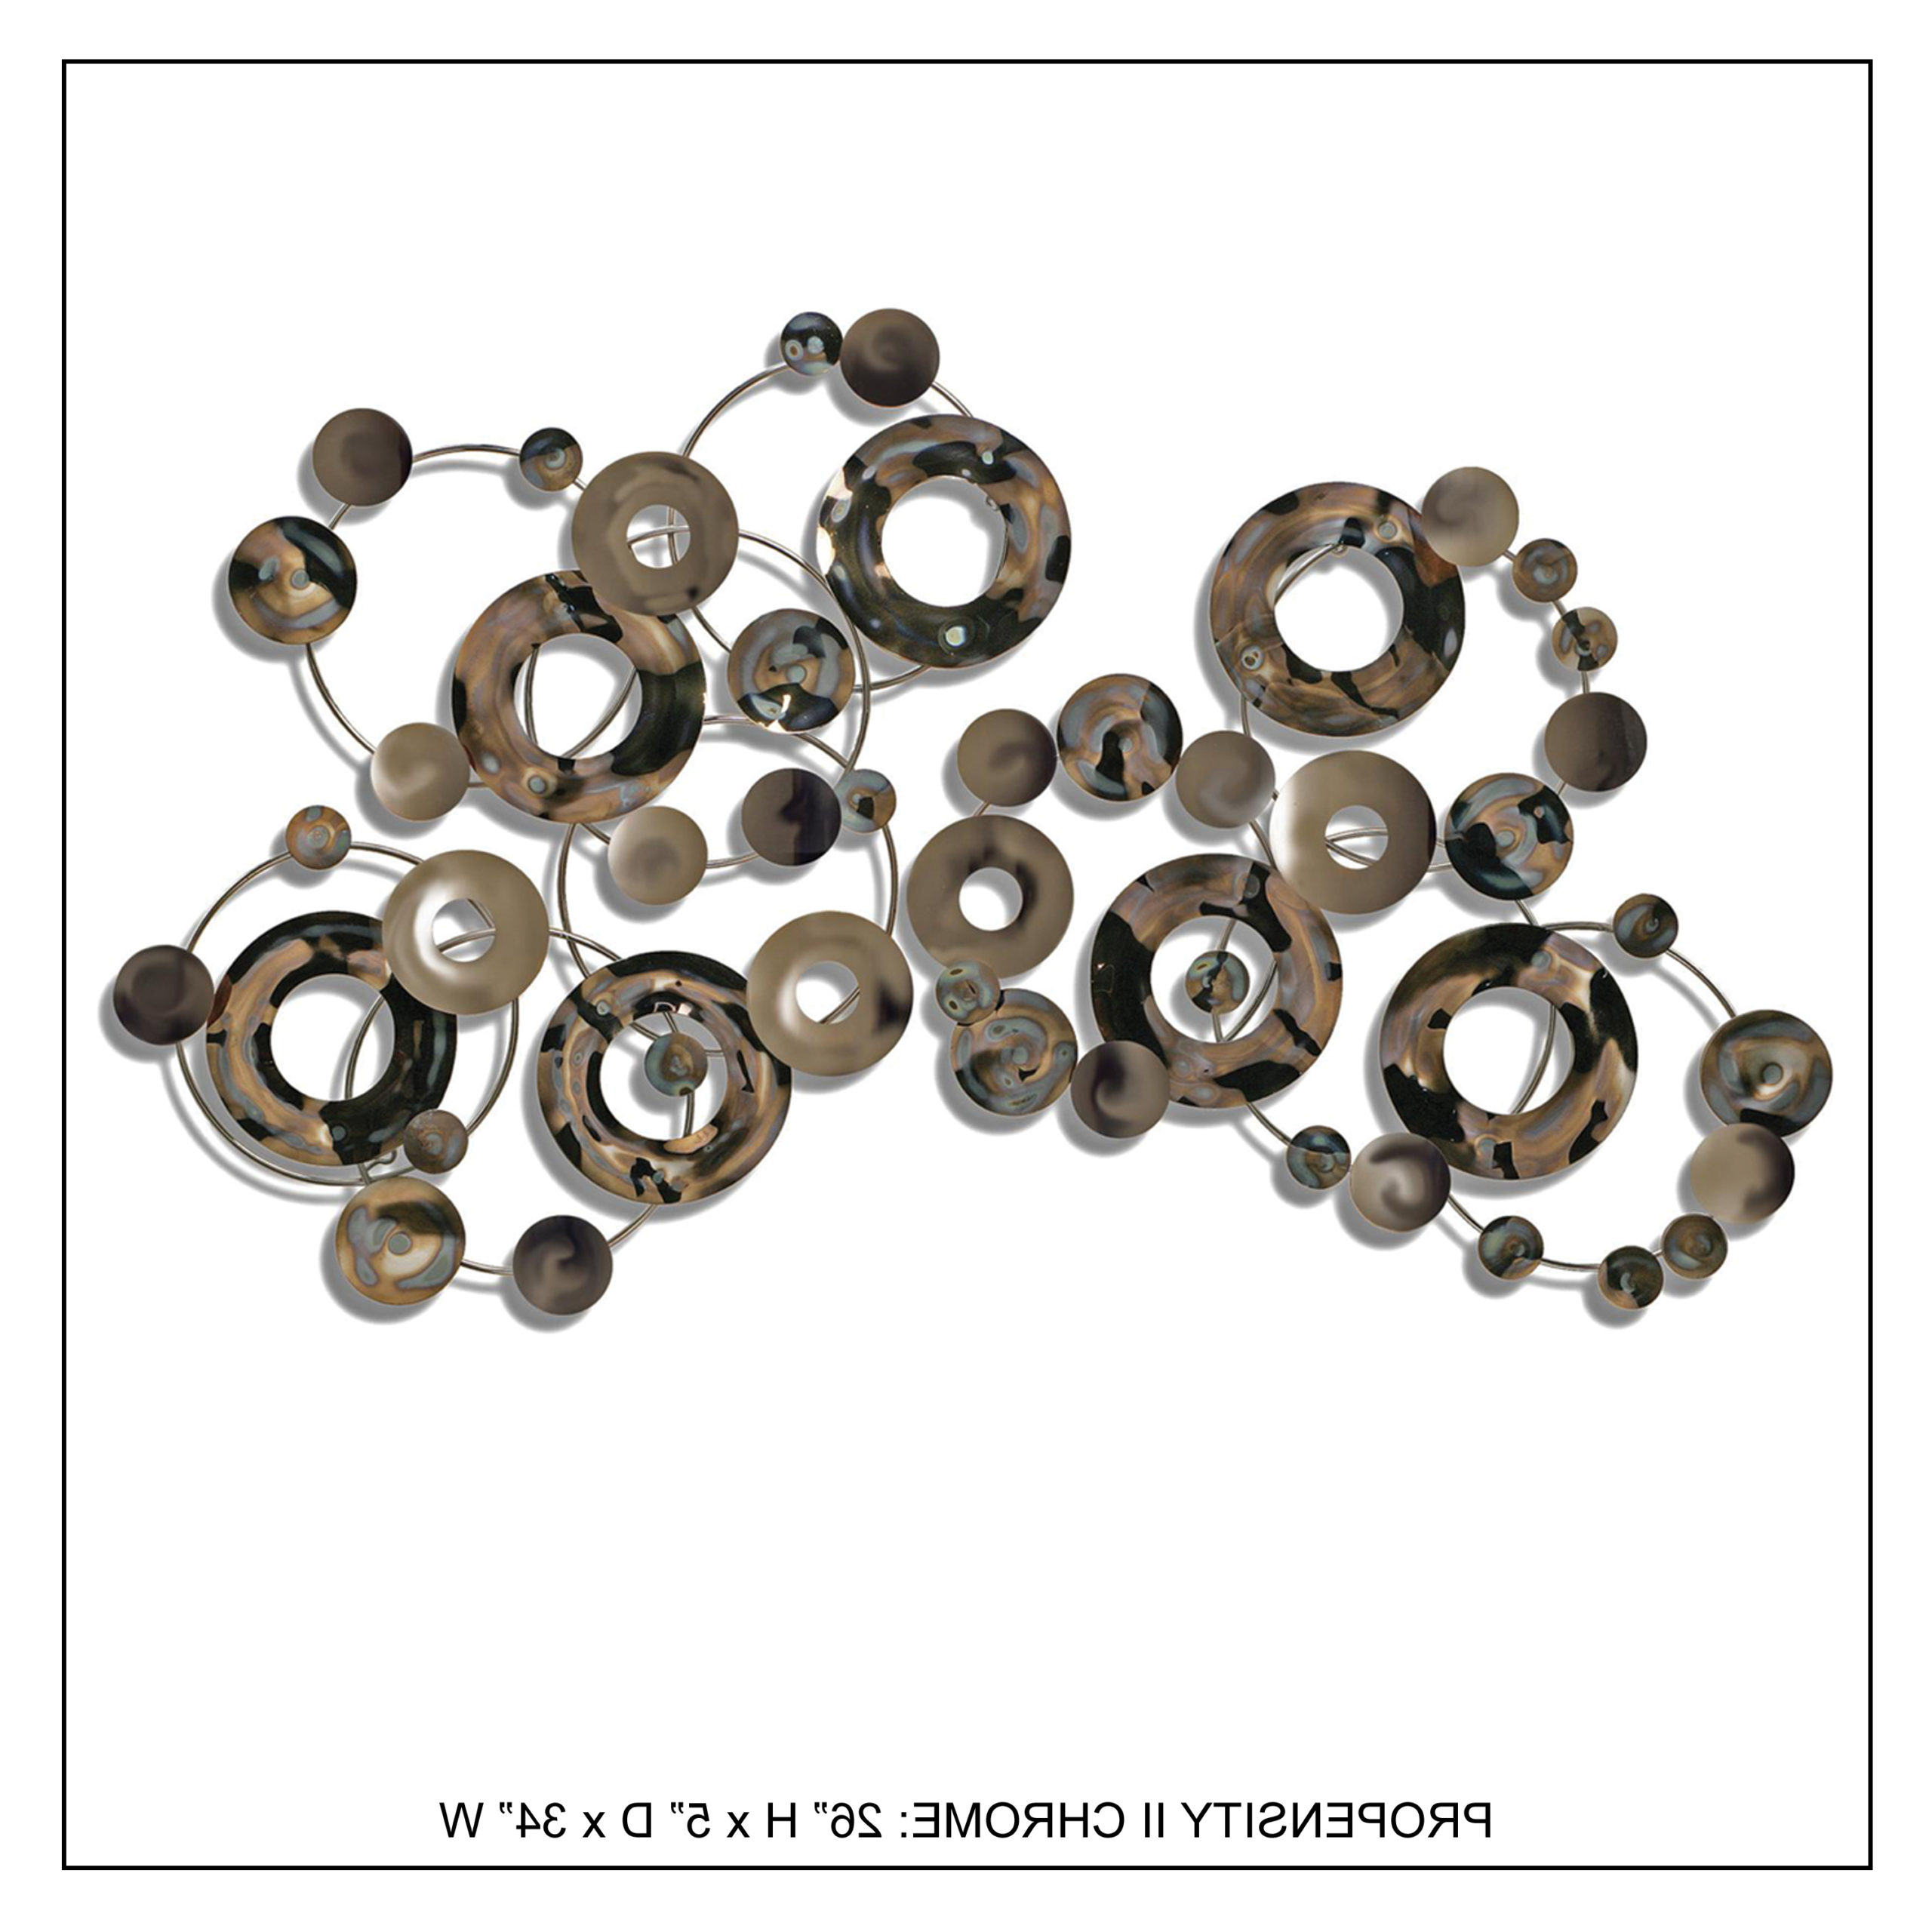 Propensity Ii Chrome – Handcrafted Metal Wall Decor – Innomax Inside Favorite Handcrafted Metal Wall Décor (View 5 of 20)